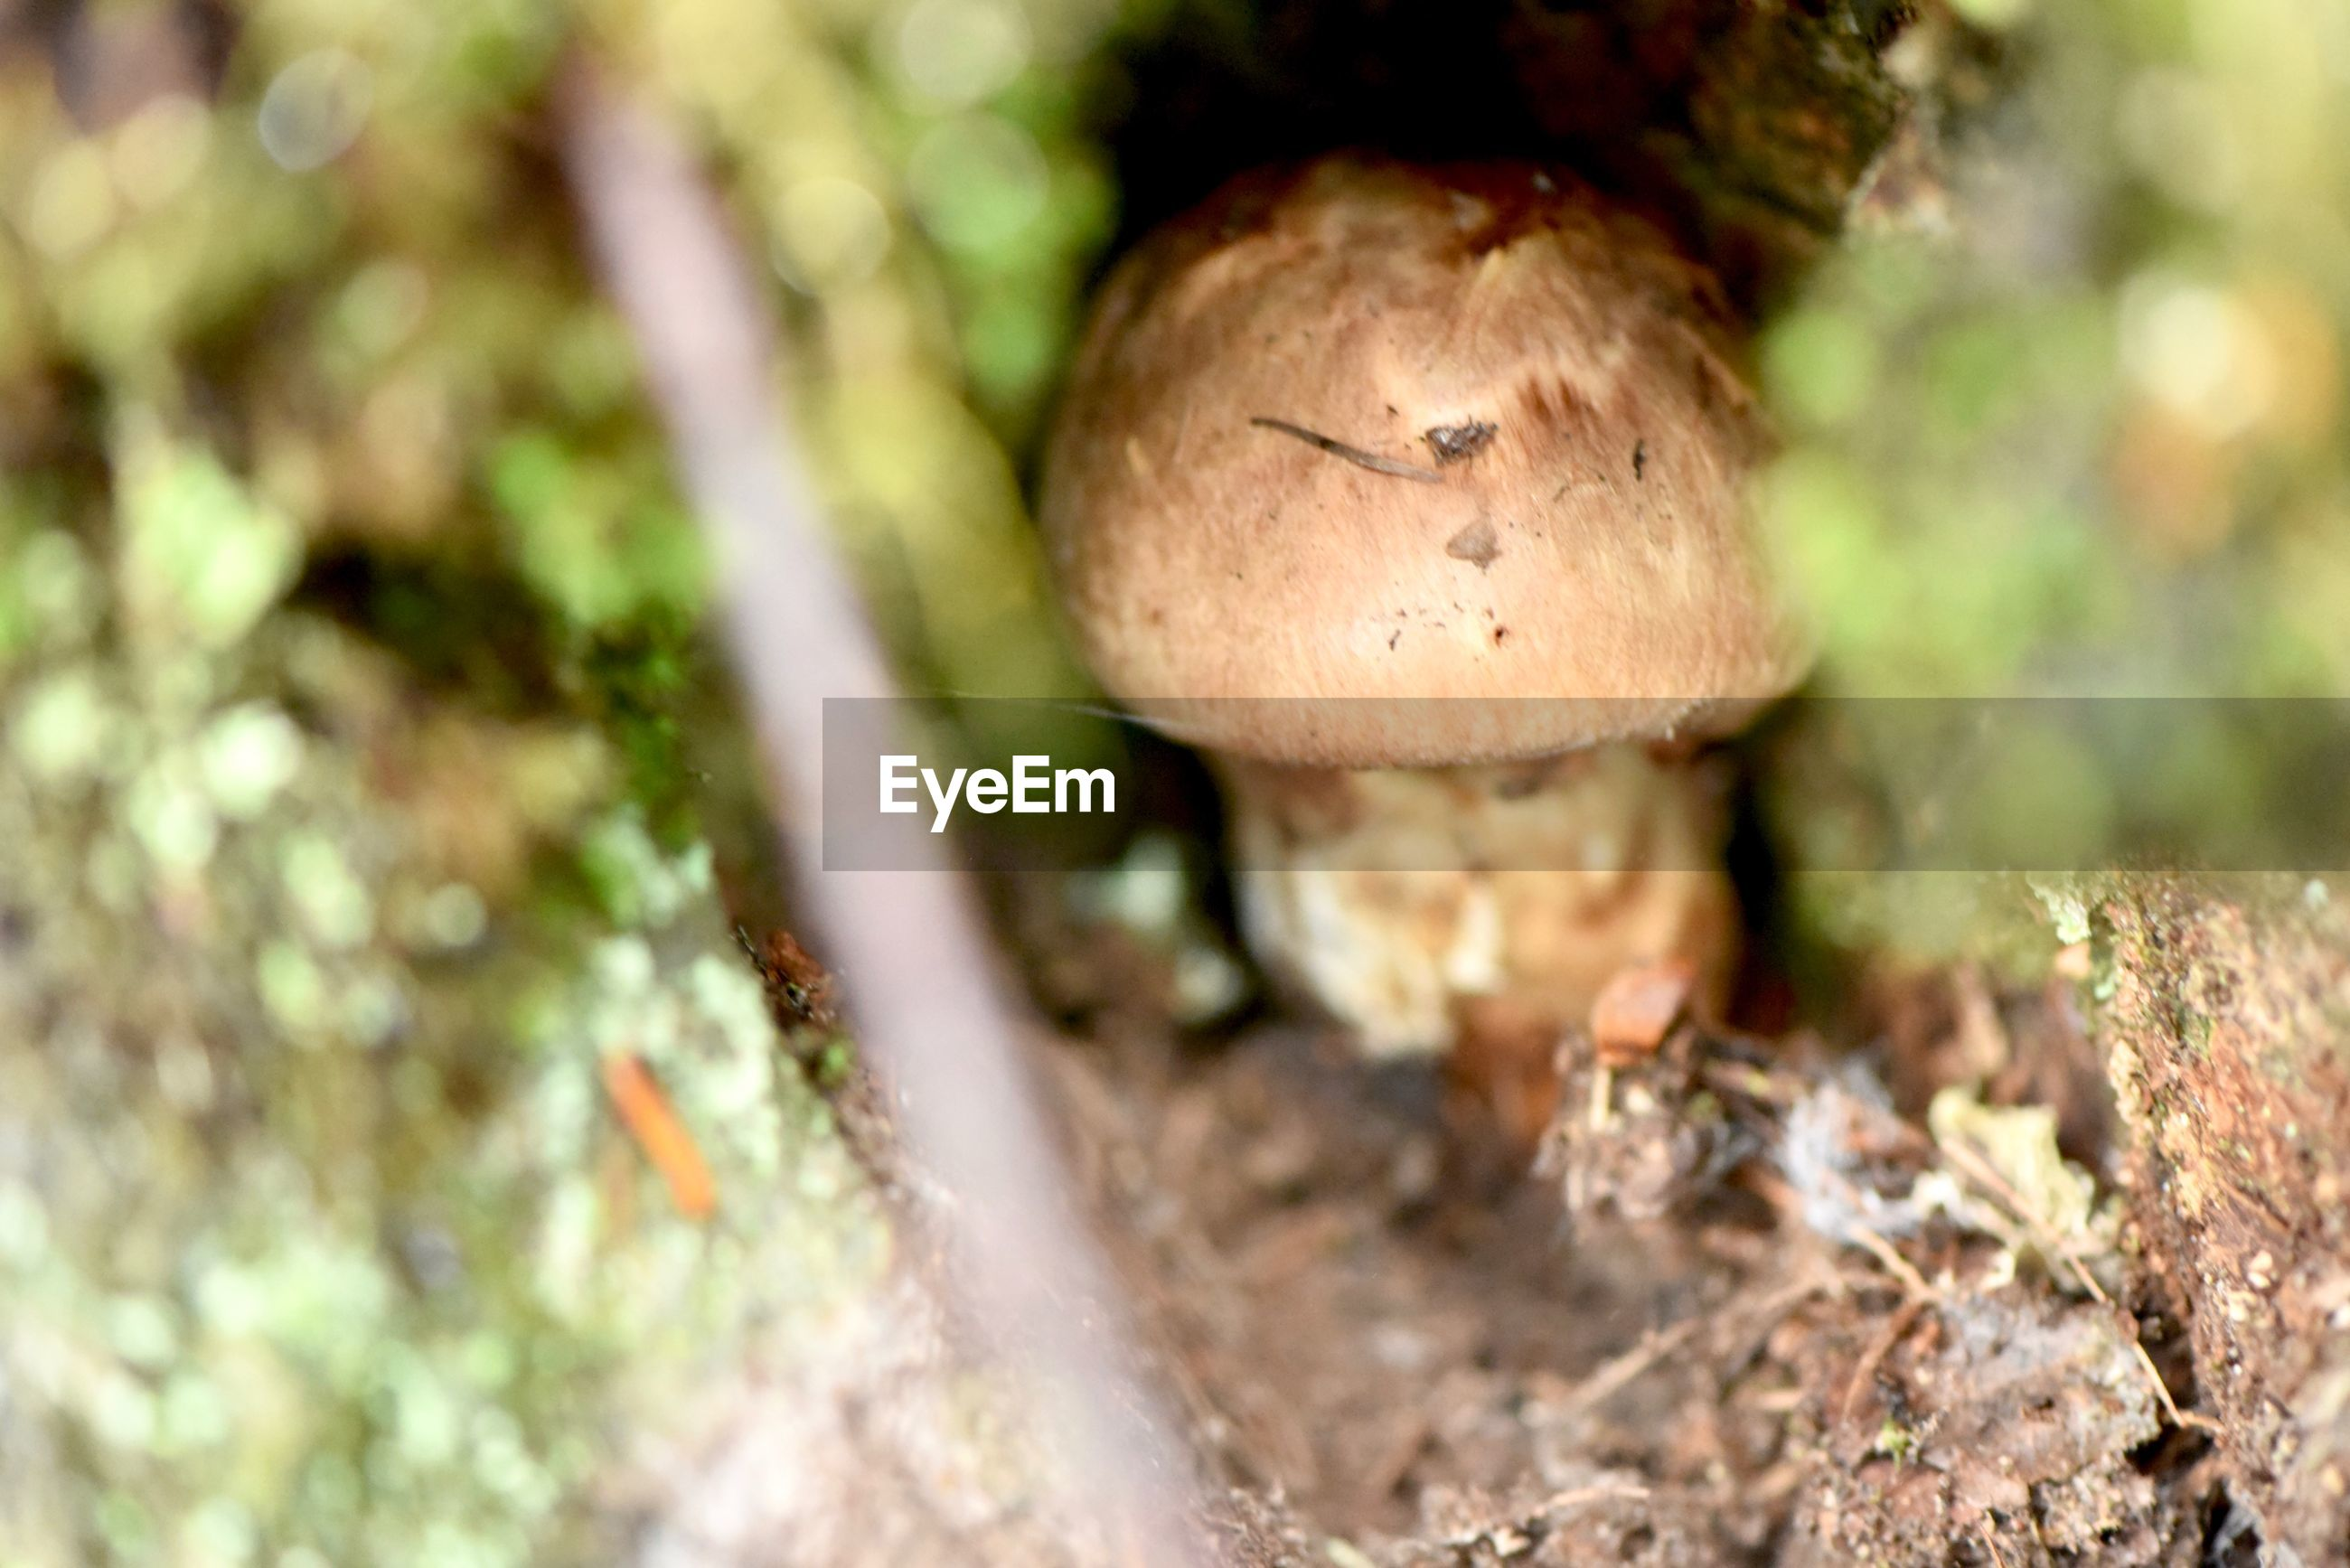 mushroom, fungus, food, vegetable, selective focus, close-up, growth, no people, plant, land, nature, day, tree, field, moss, toadstool, food and drink, outdoors, beauty in nature, edible mushroom